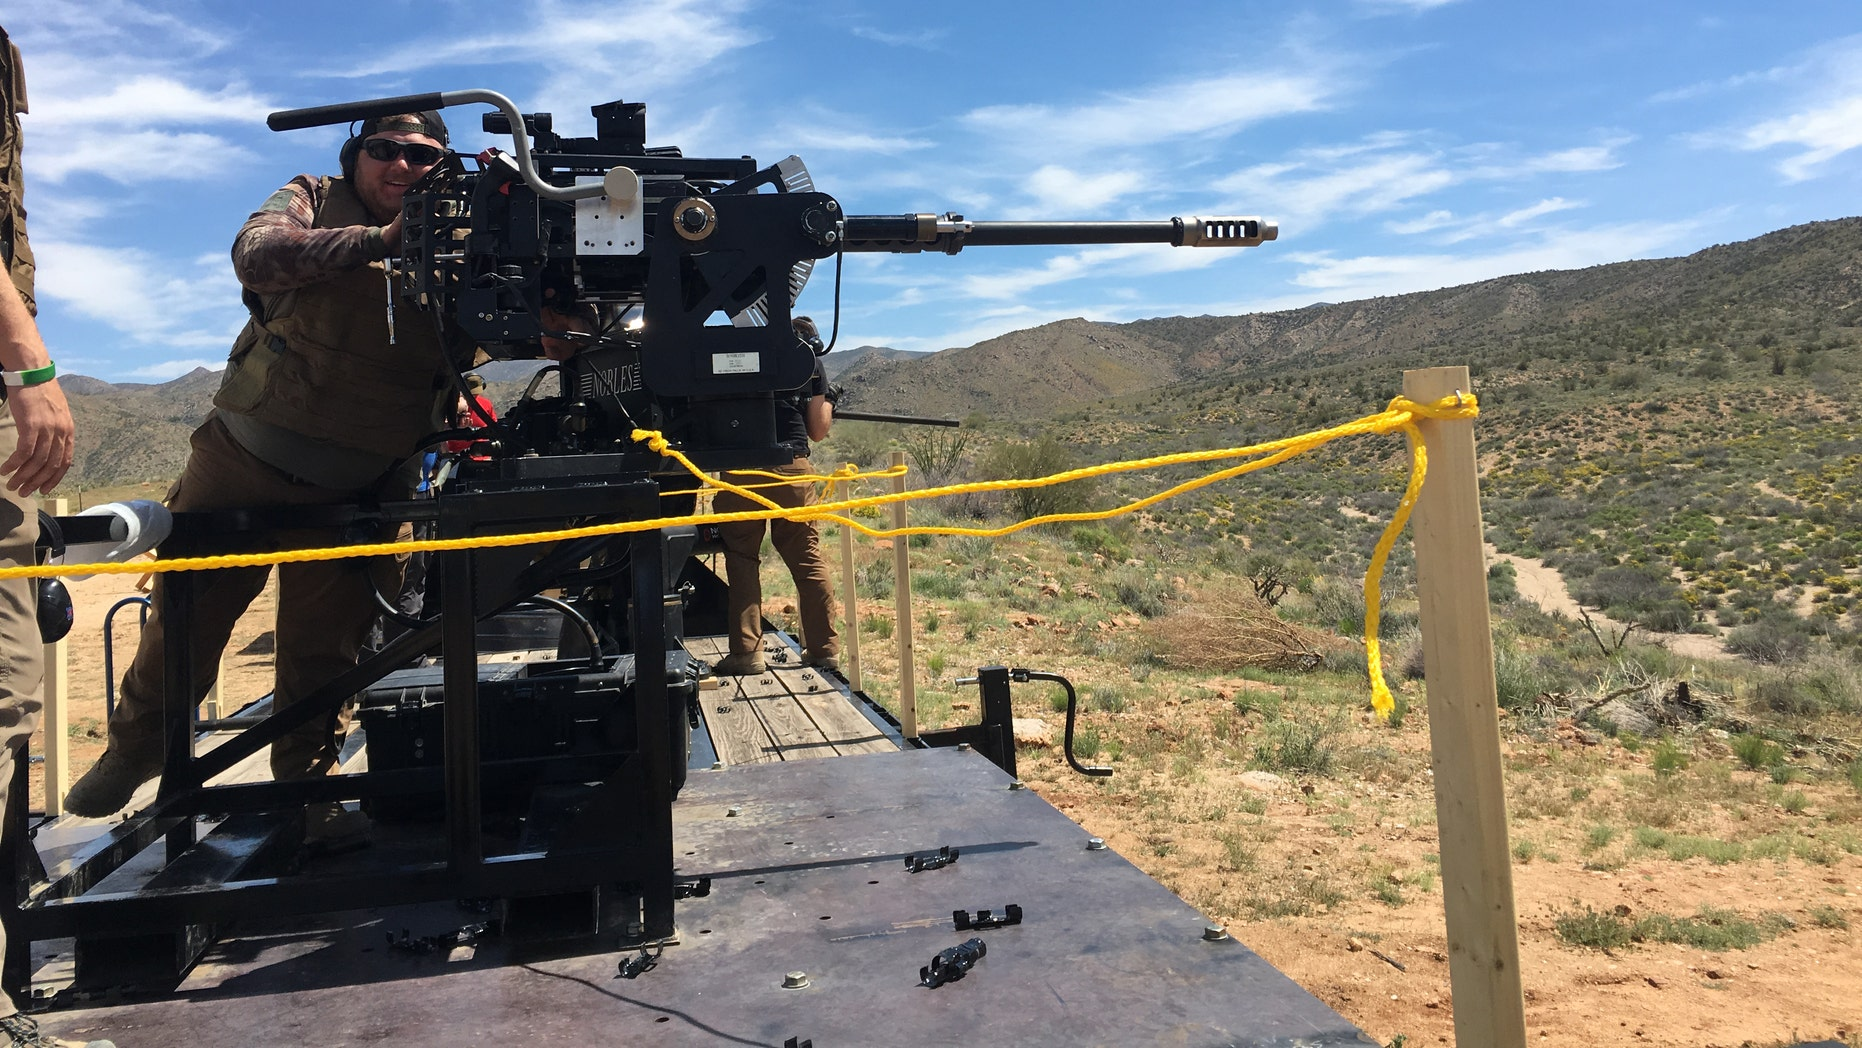 What it's like to fire the 30mm cannon that arms the Stryker armored vehicle